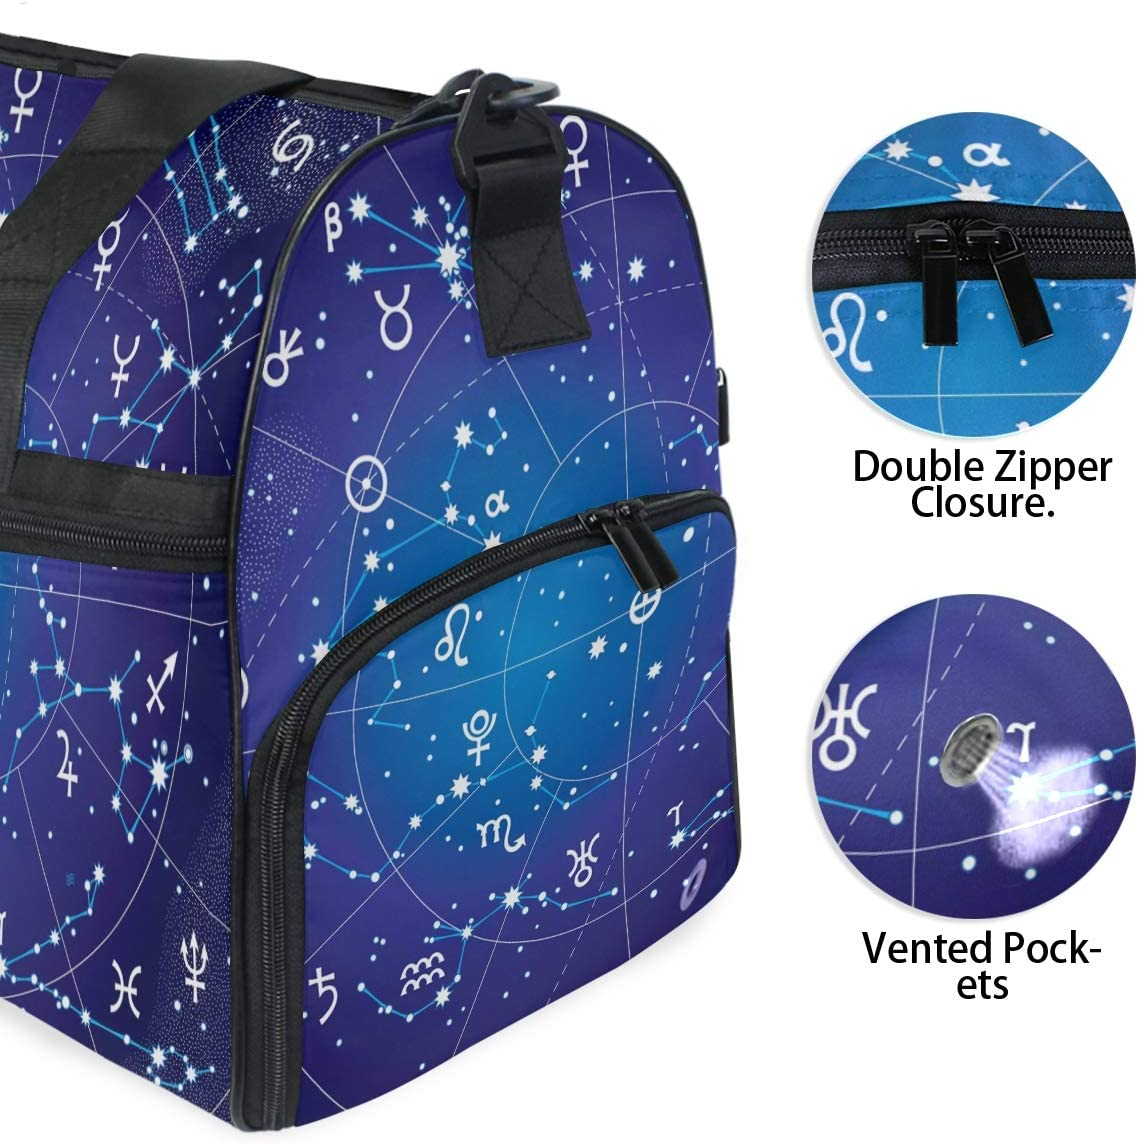 ALAZA Zodiac Constellation Galaxy Stars Sports Gym Duffel Bag Travel Luggage Handbag Shoulder Bag with Shoes Compartment for Men Women